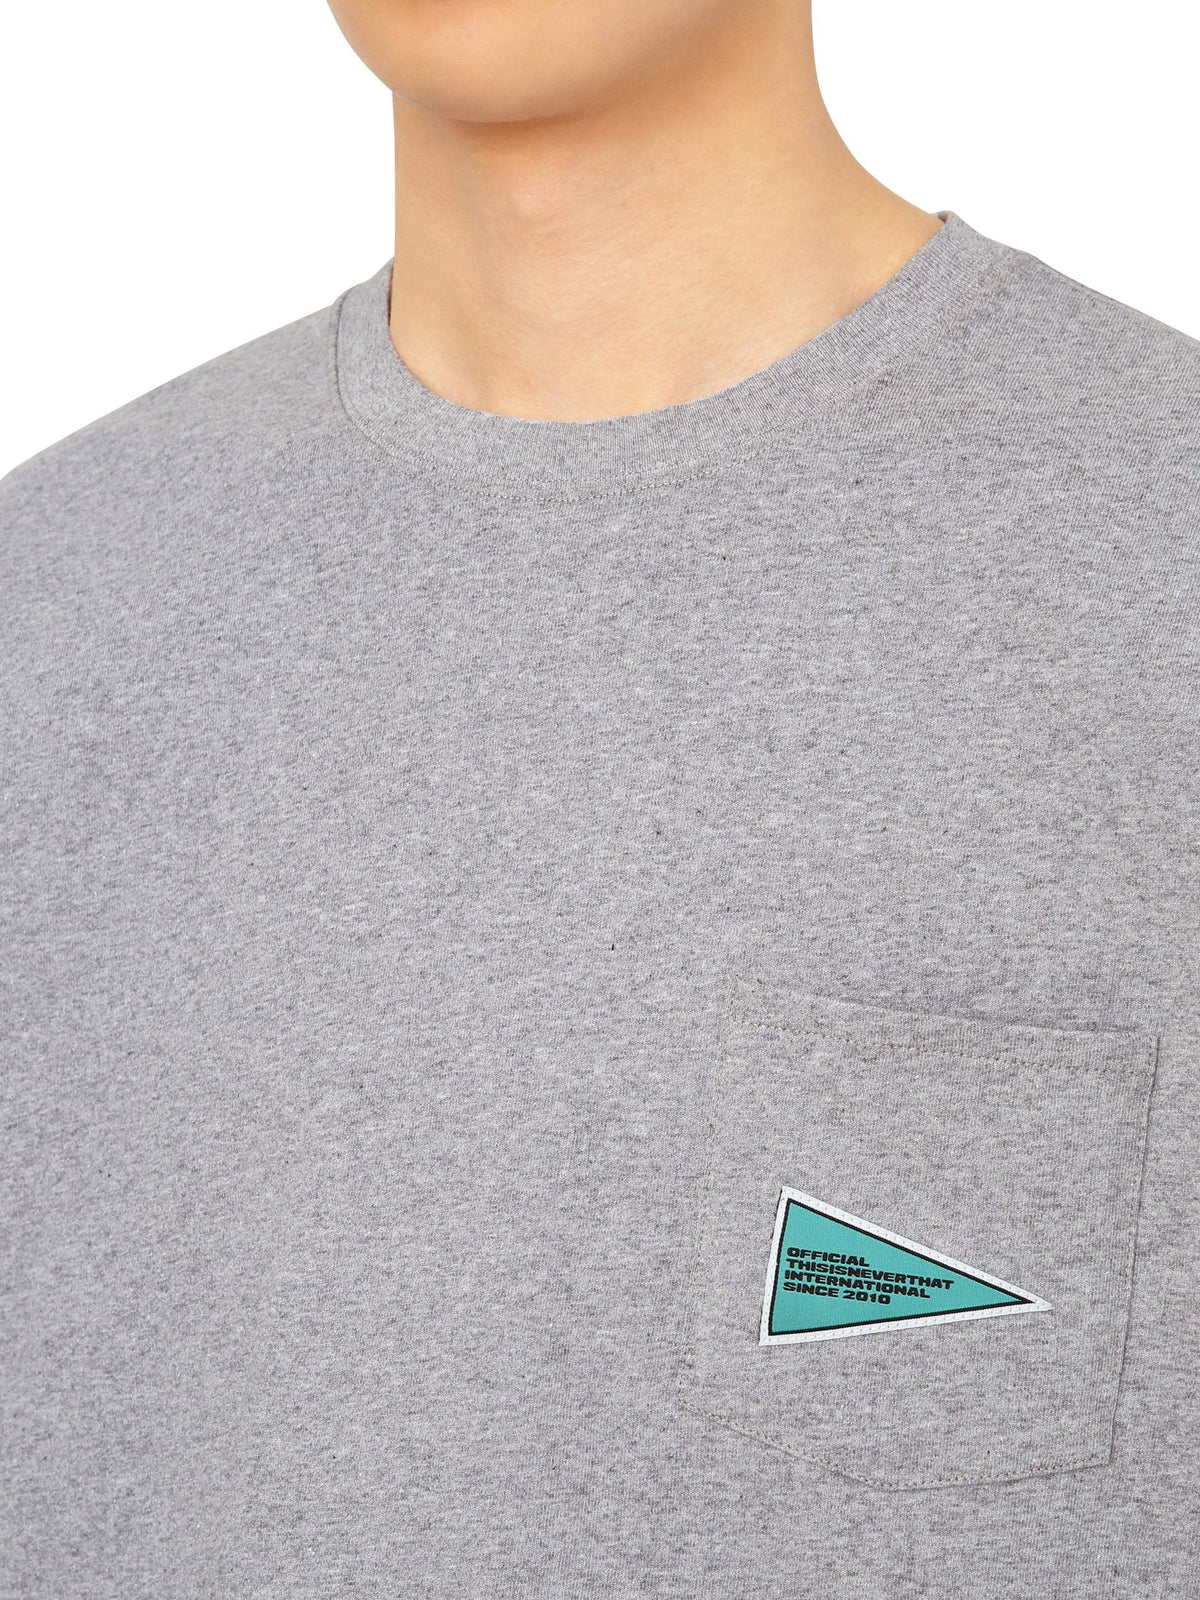 Flag Pocket L/SL Top L/SL T-Shirt